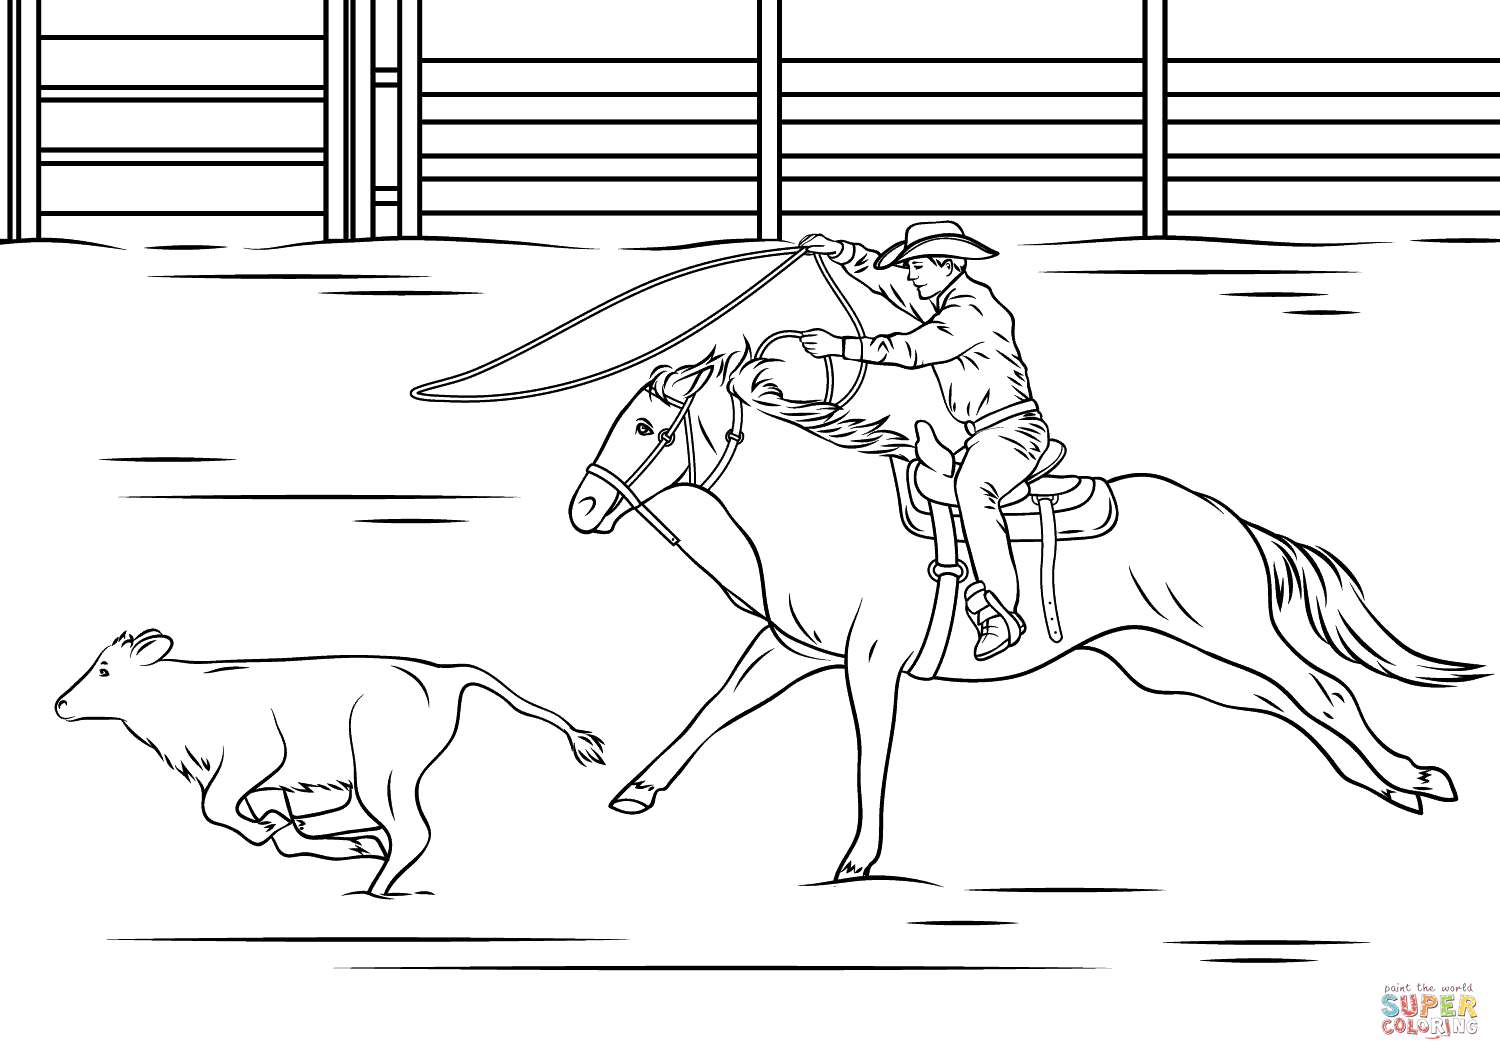 Calf Roping Rodeo Coloring Page